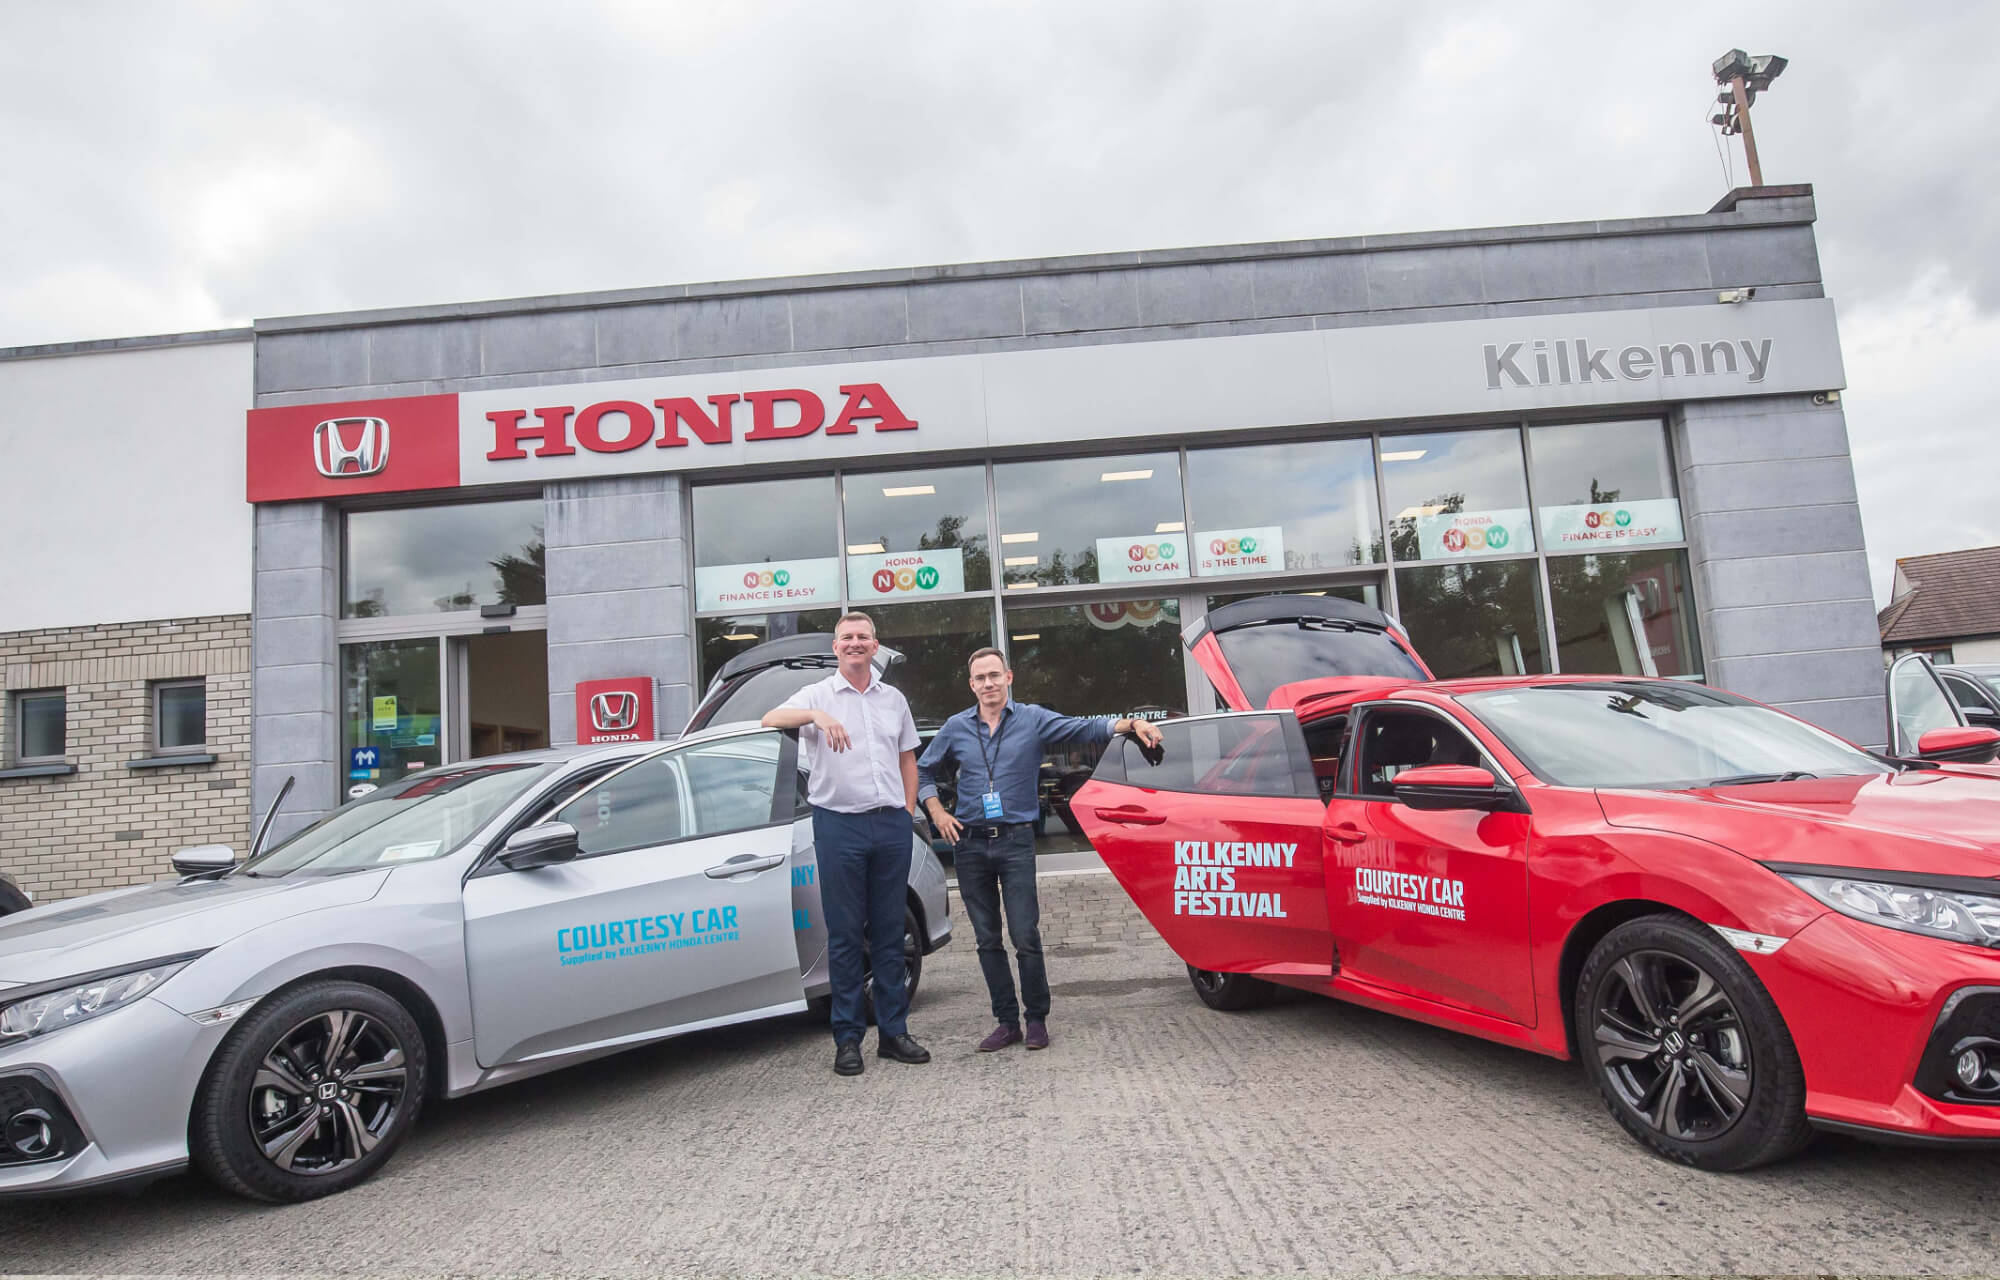 Kilkenny Honda Centre partners with Kilkenny Arts Festival